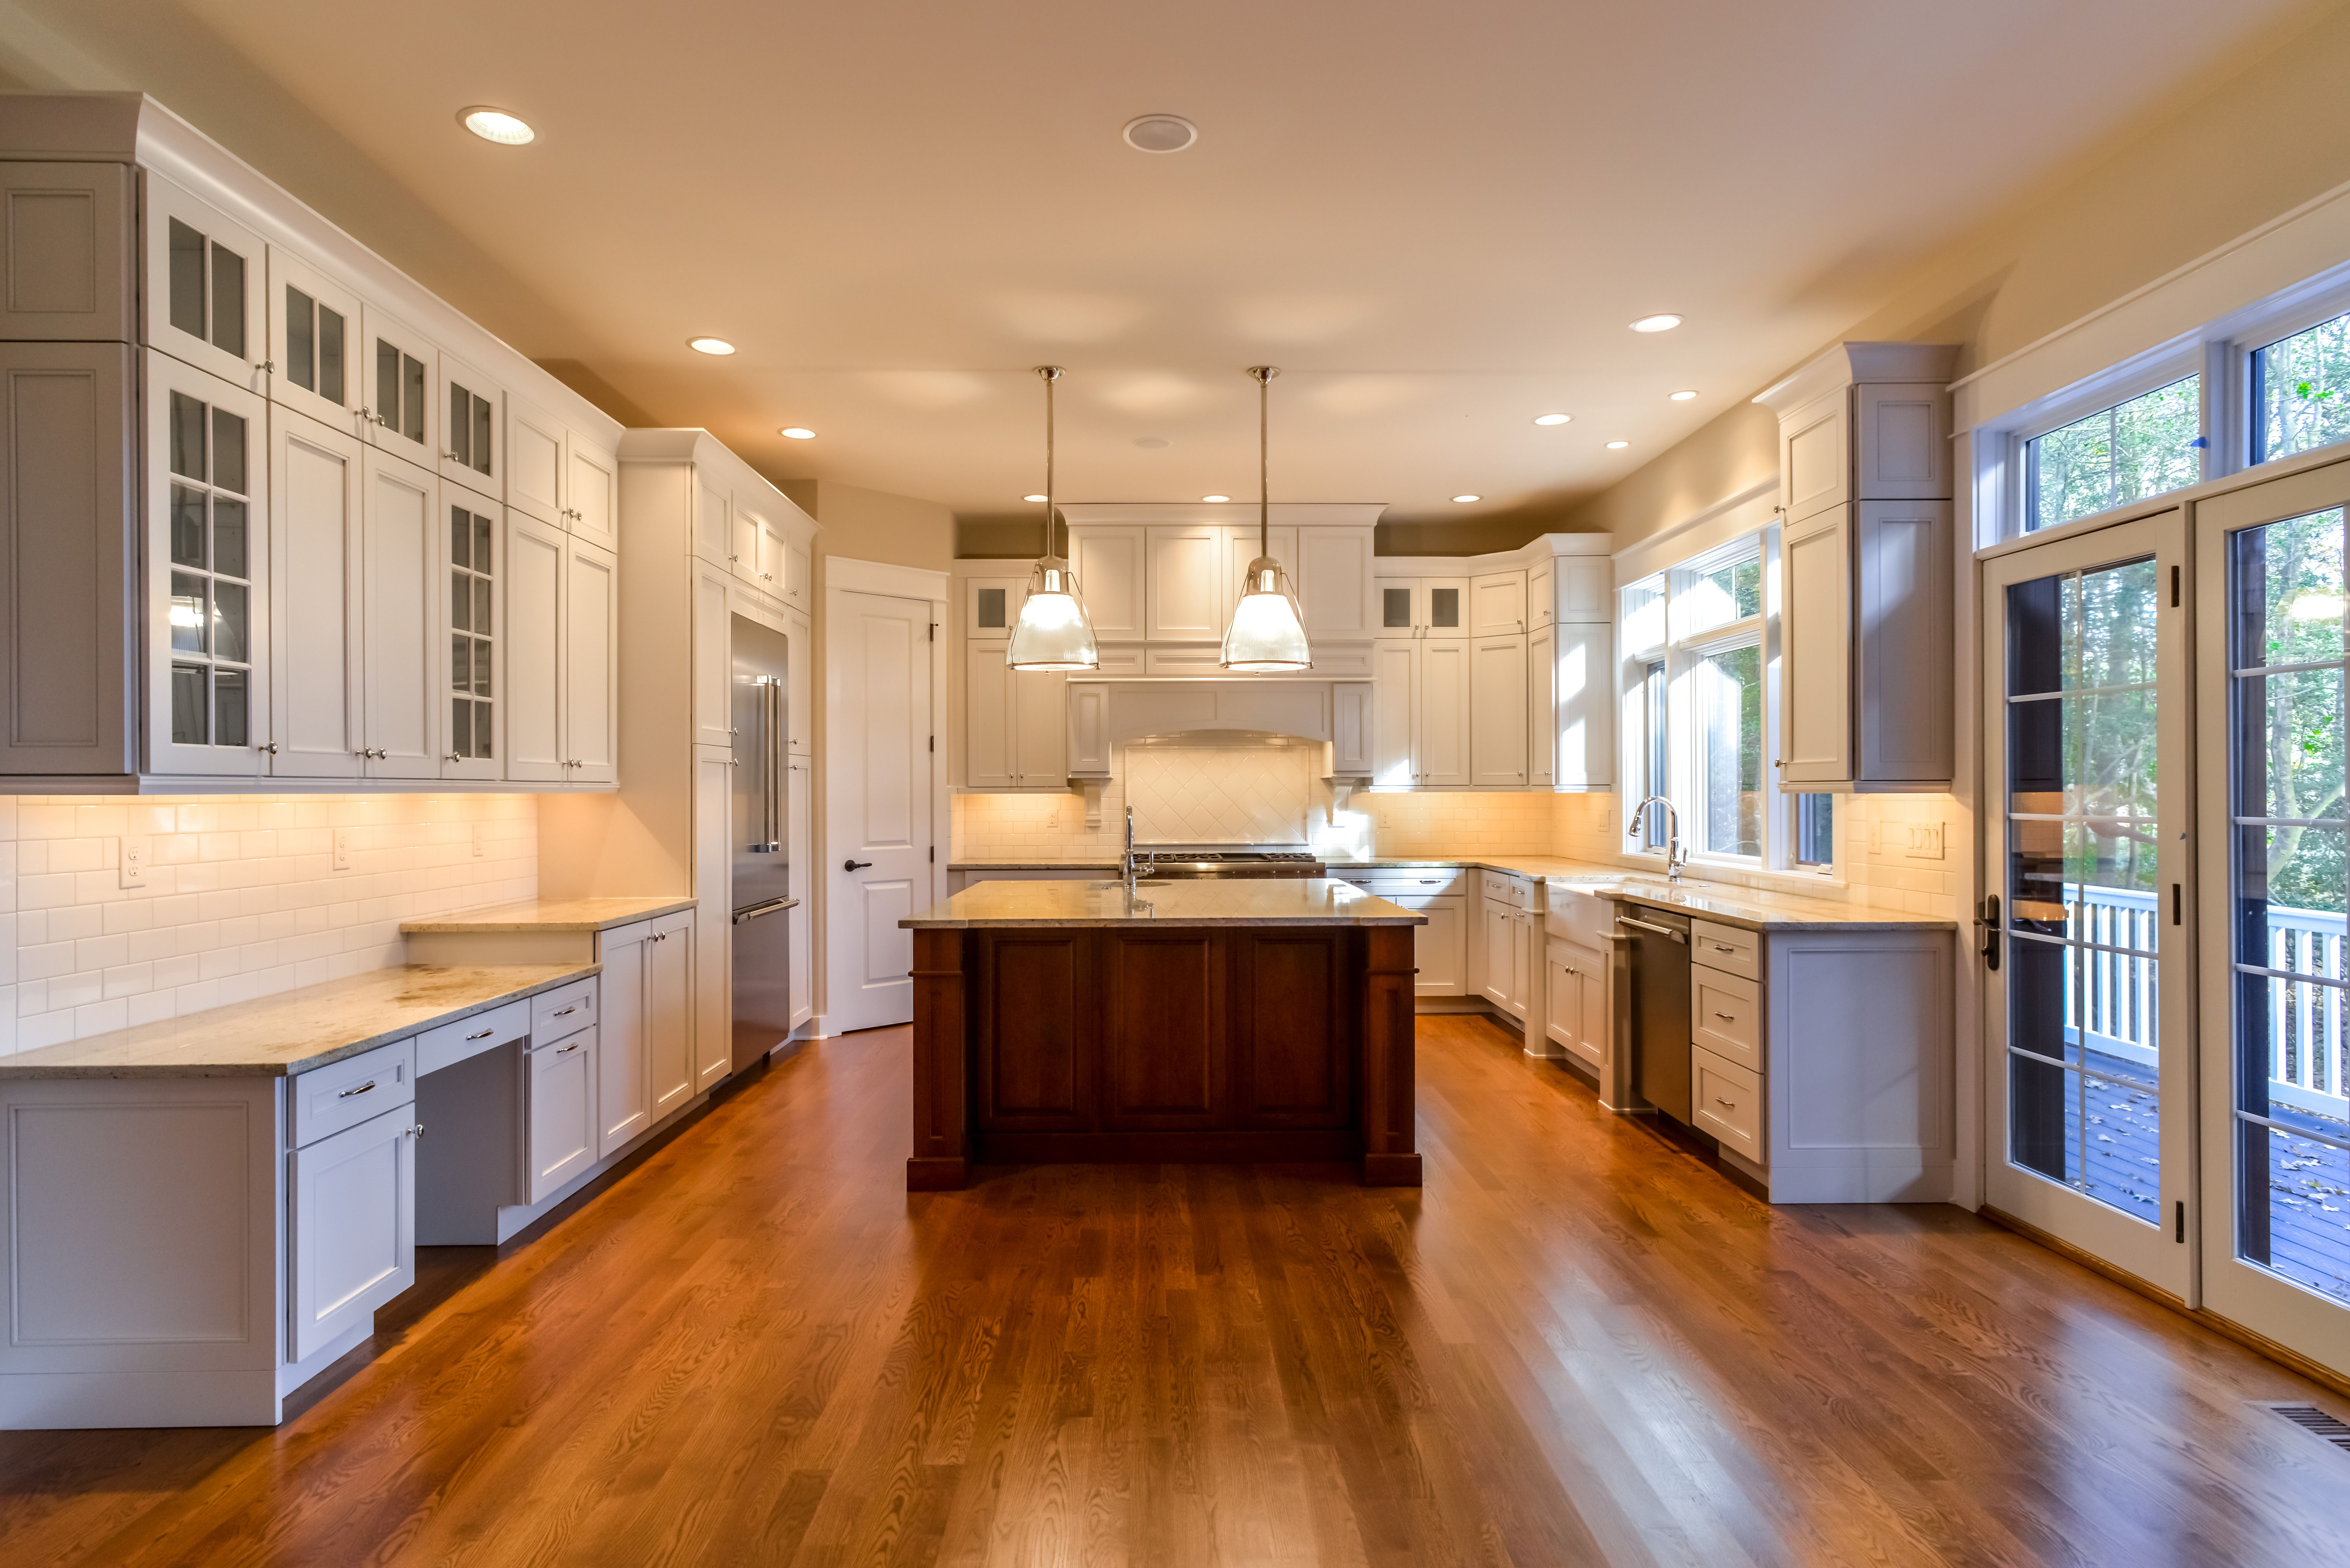 Gourmet Kitchen In Wellstone Place, A Southern Living House Plan Featuring  Thermador Appliances, Granite